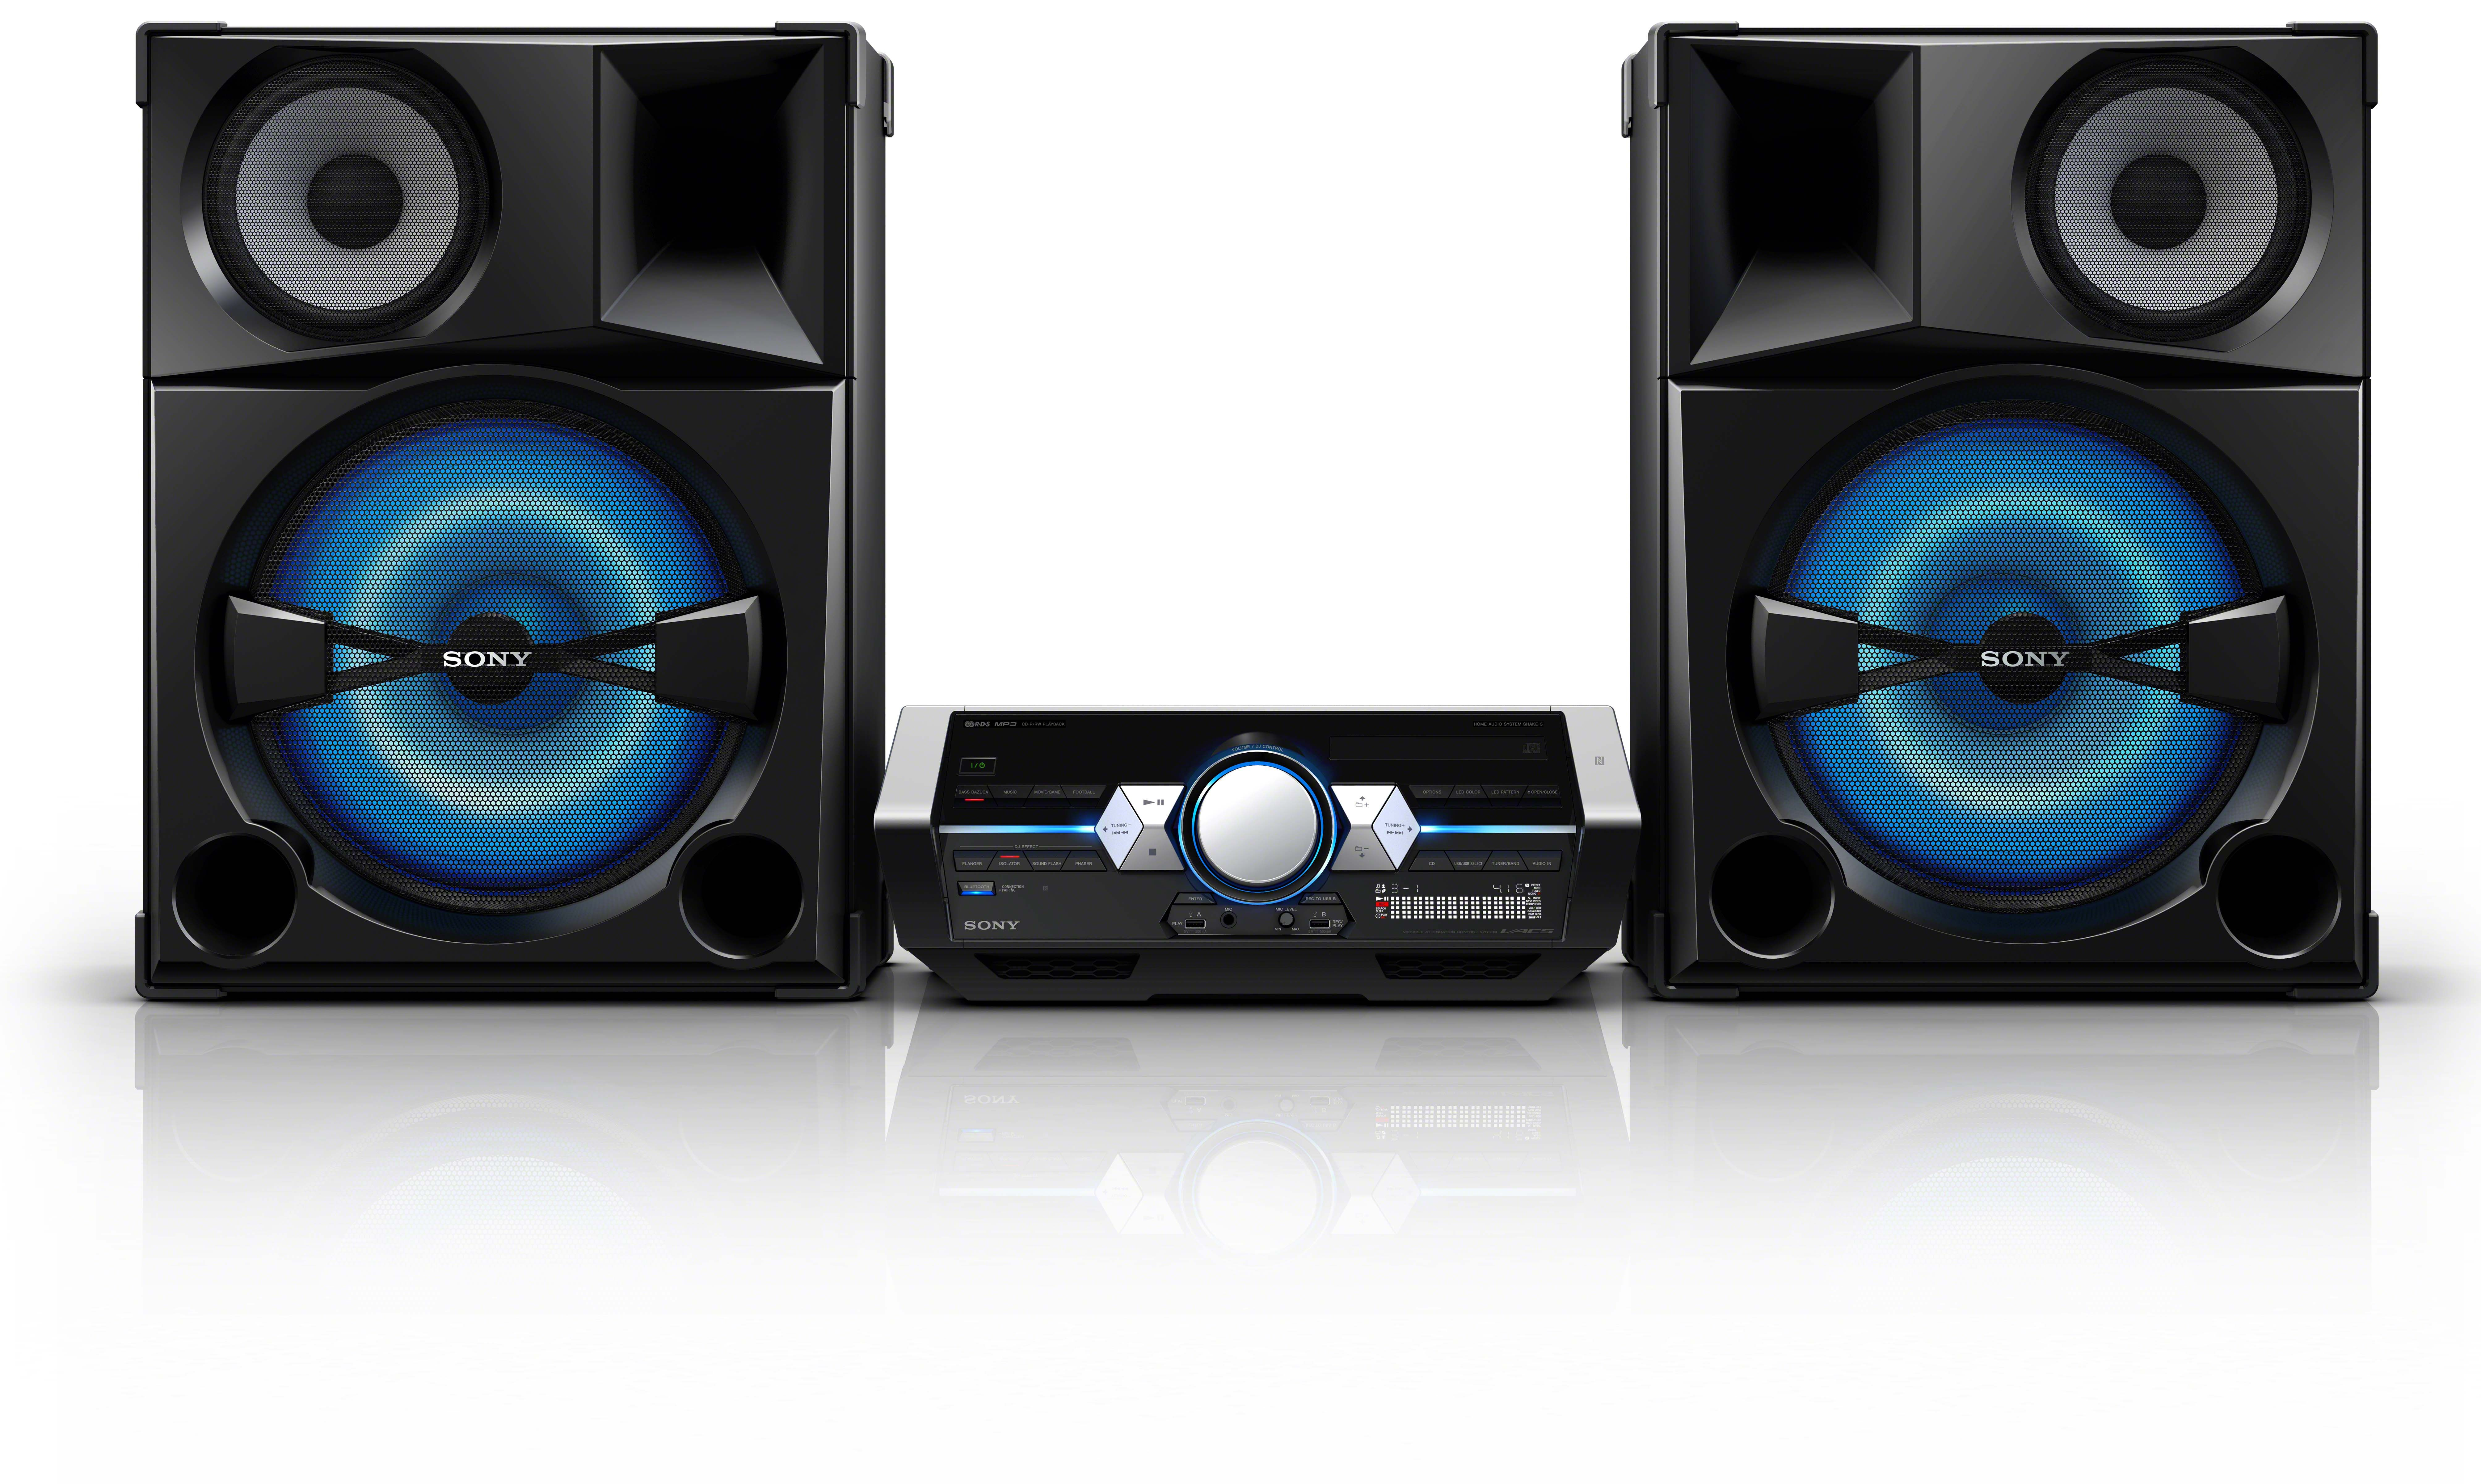 Got That Boom Boom Pow With 2 400 Watts Of Power Audio System Sony Electronics Top Audio